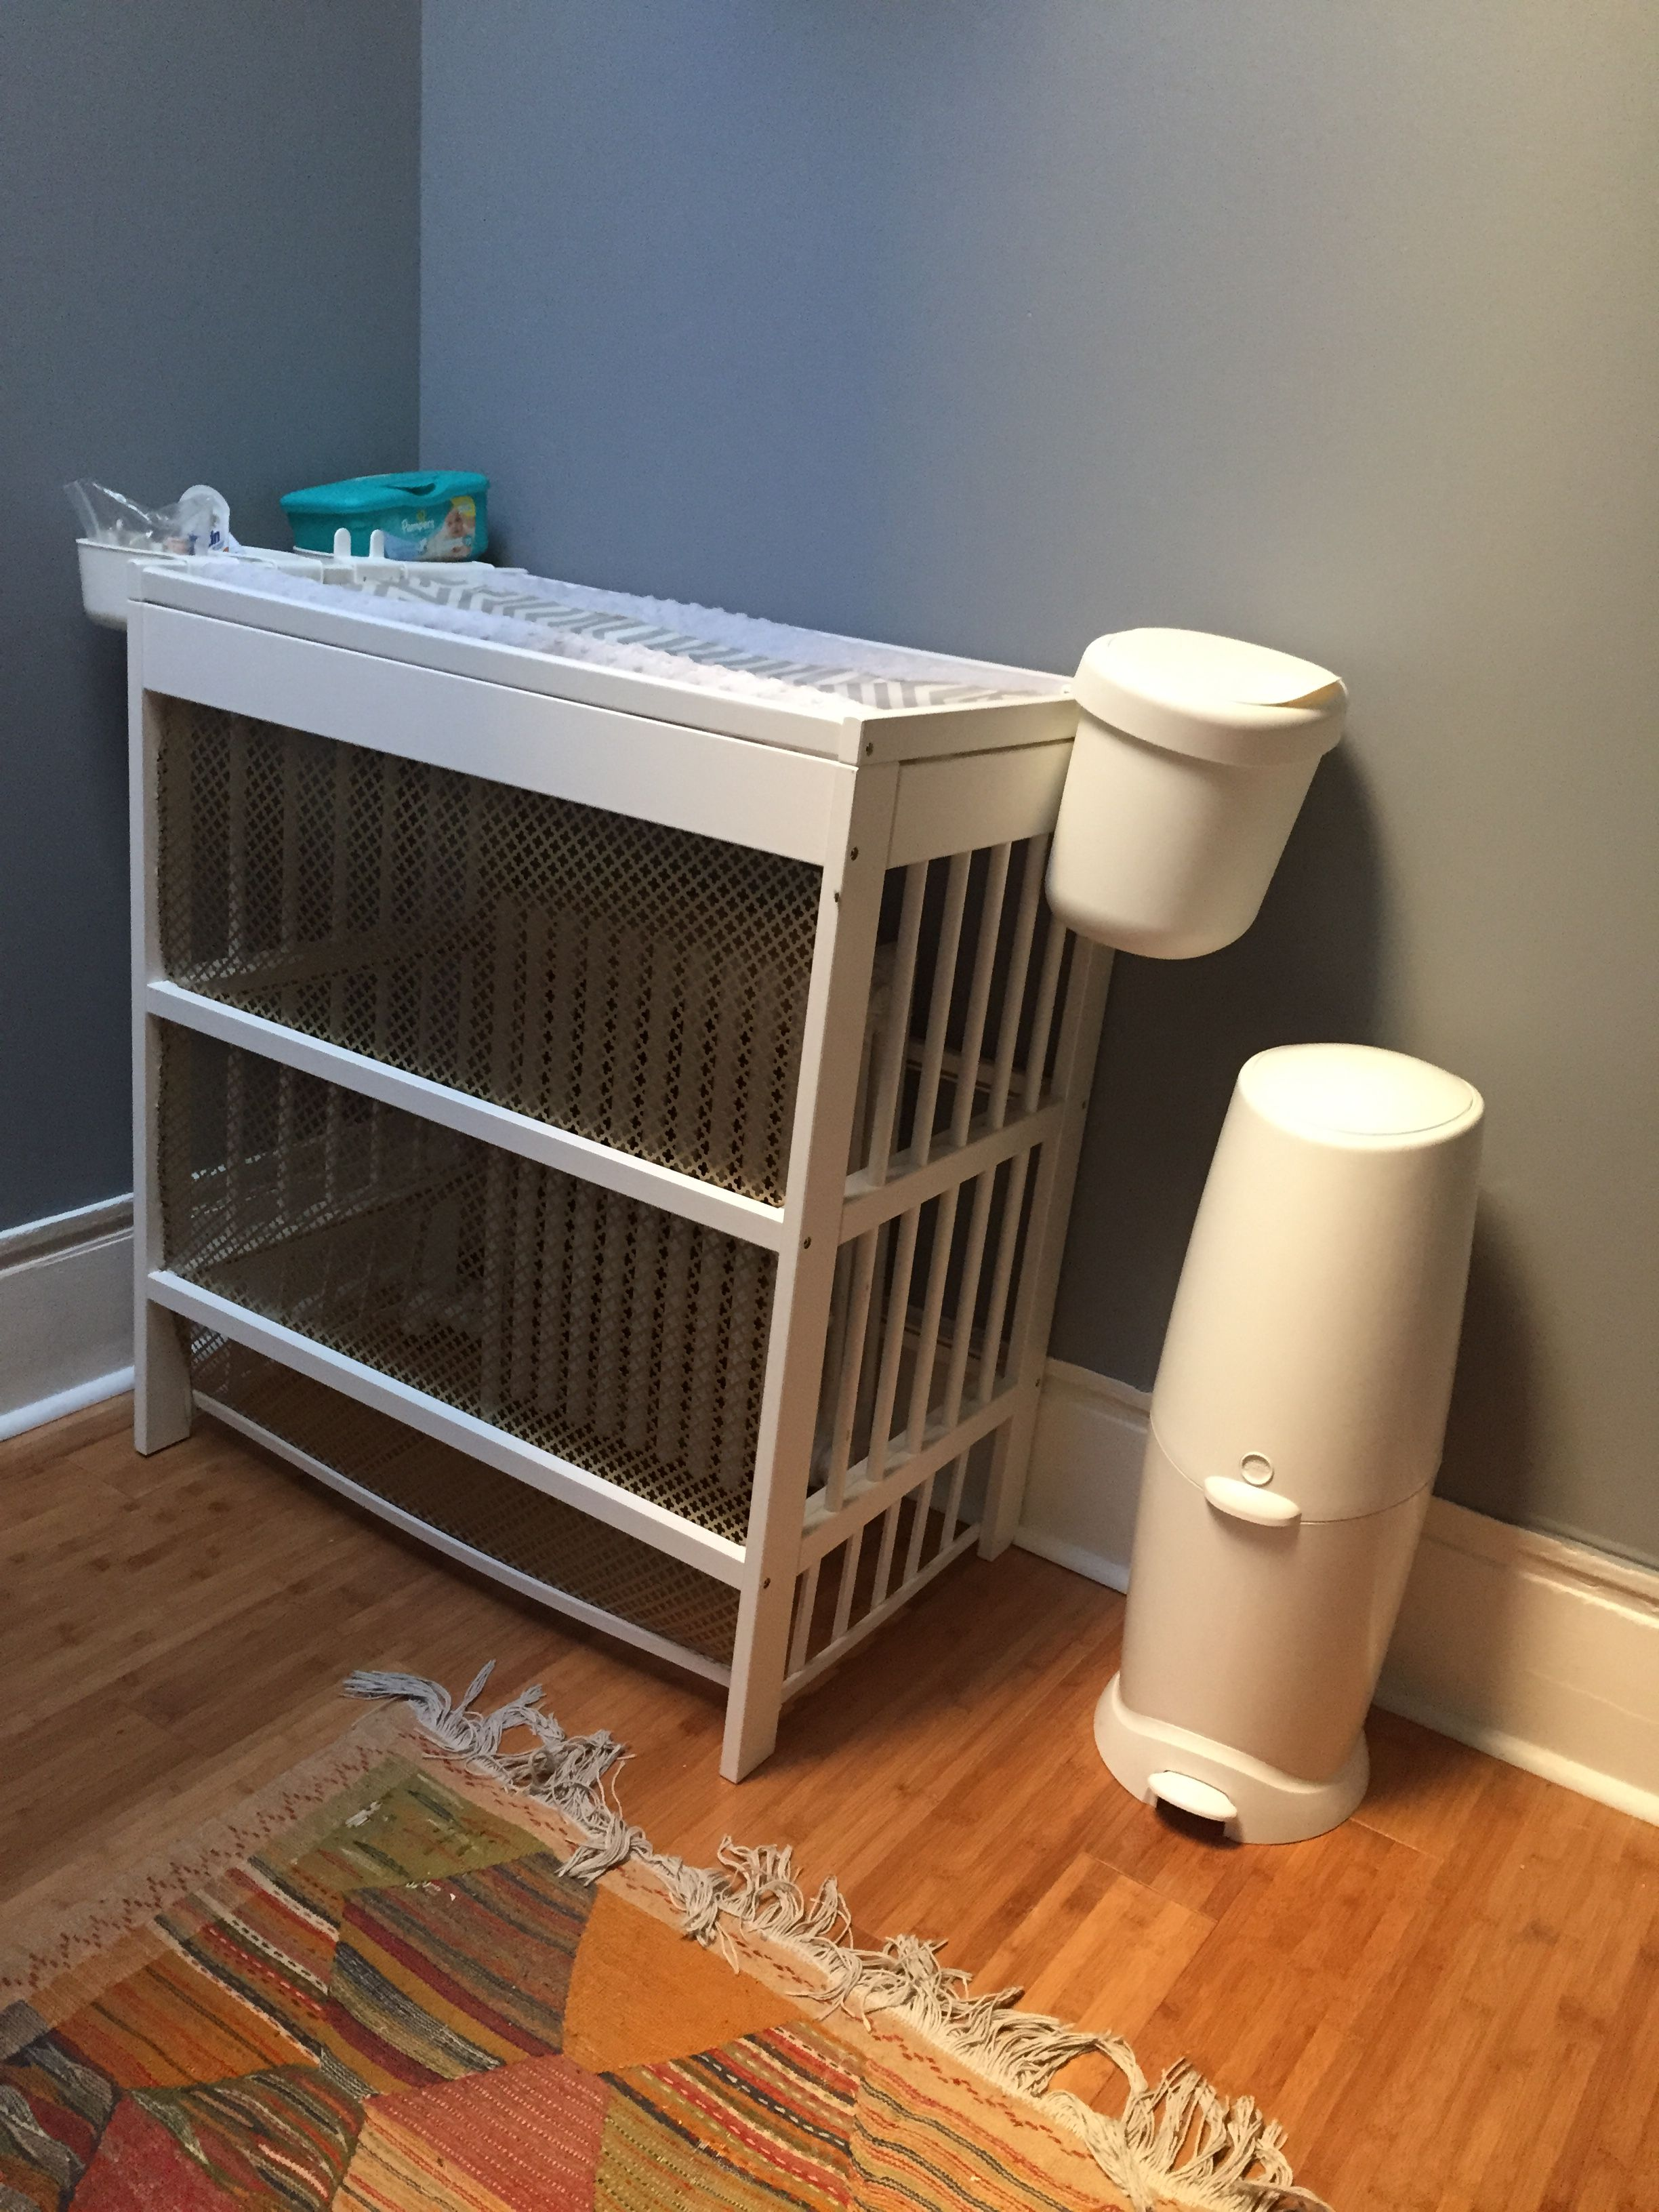 Just IKEA hacked my way to a changing table and radiator cover in